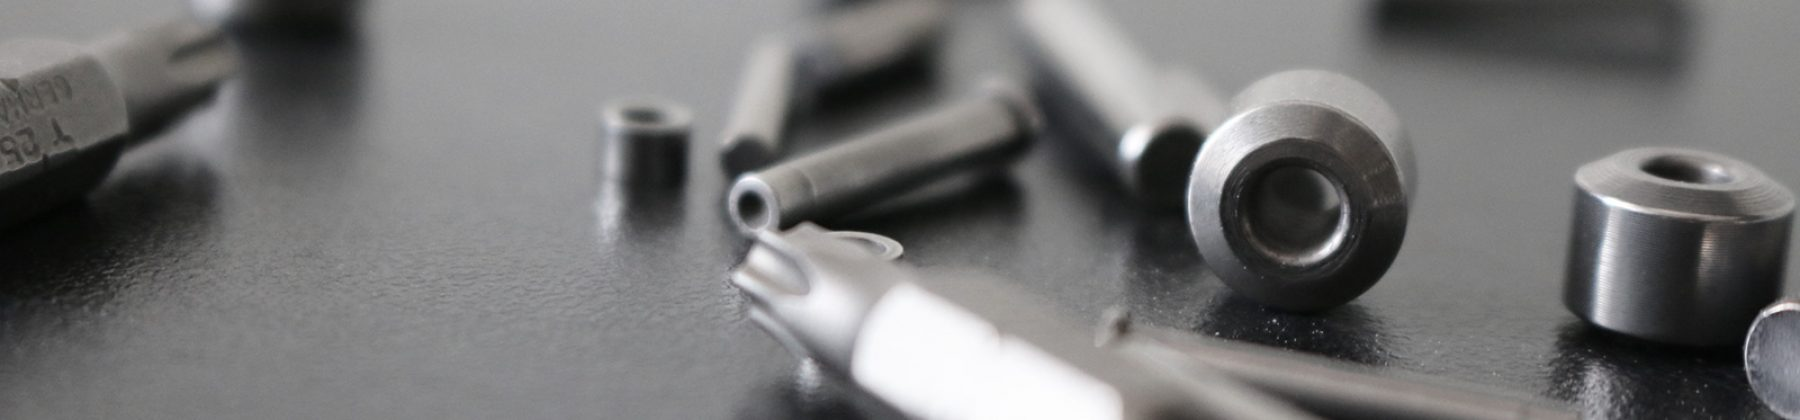 coating_components_quality_iwis_tool_industry_surface_finishing_128